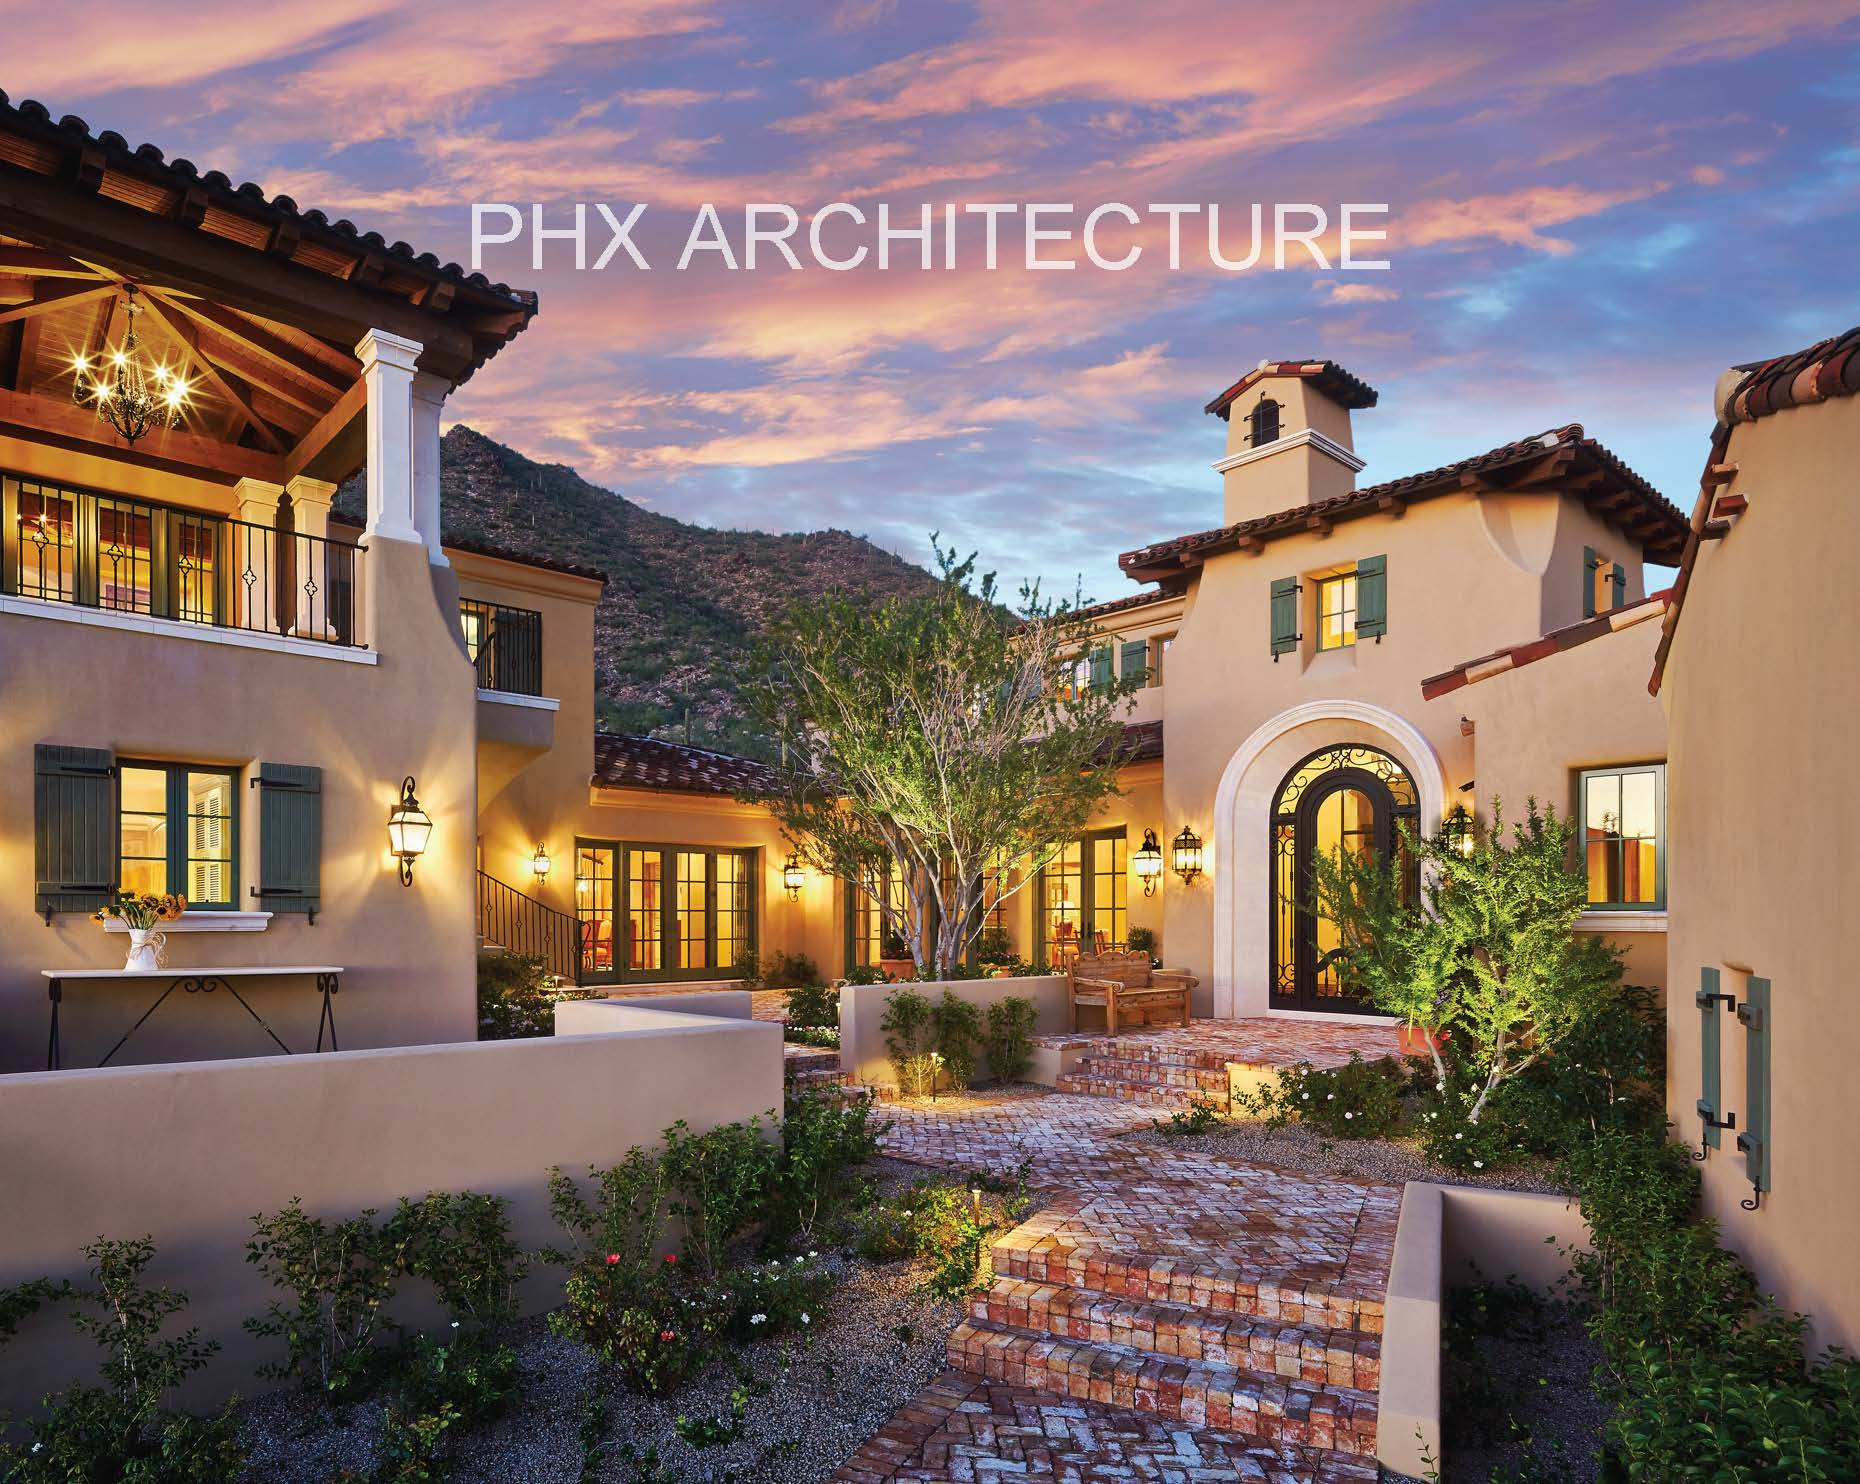 Project completion mountainside silverleaf estate phx for Silverleaf owner login